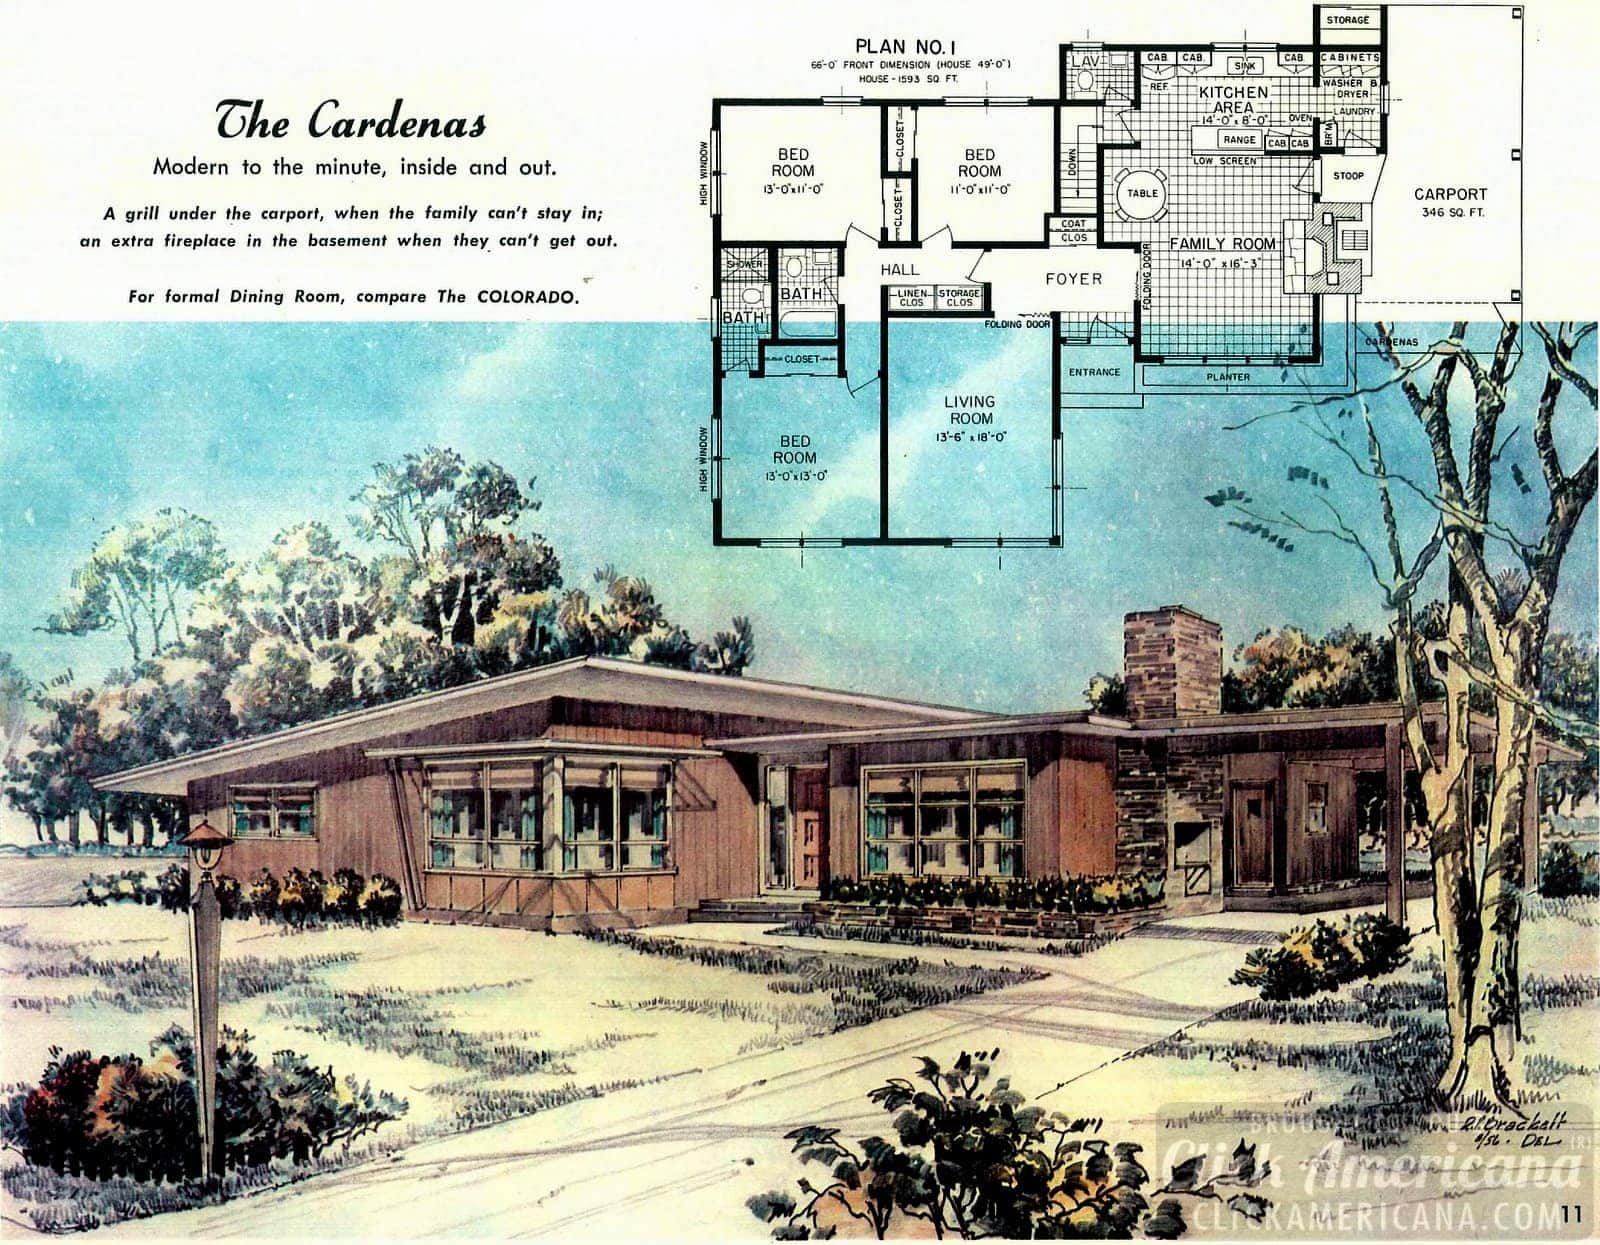 The Cardenas: Home design plans from 1958